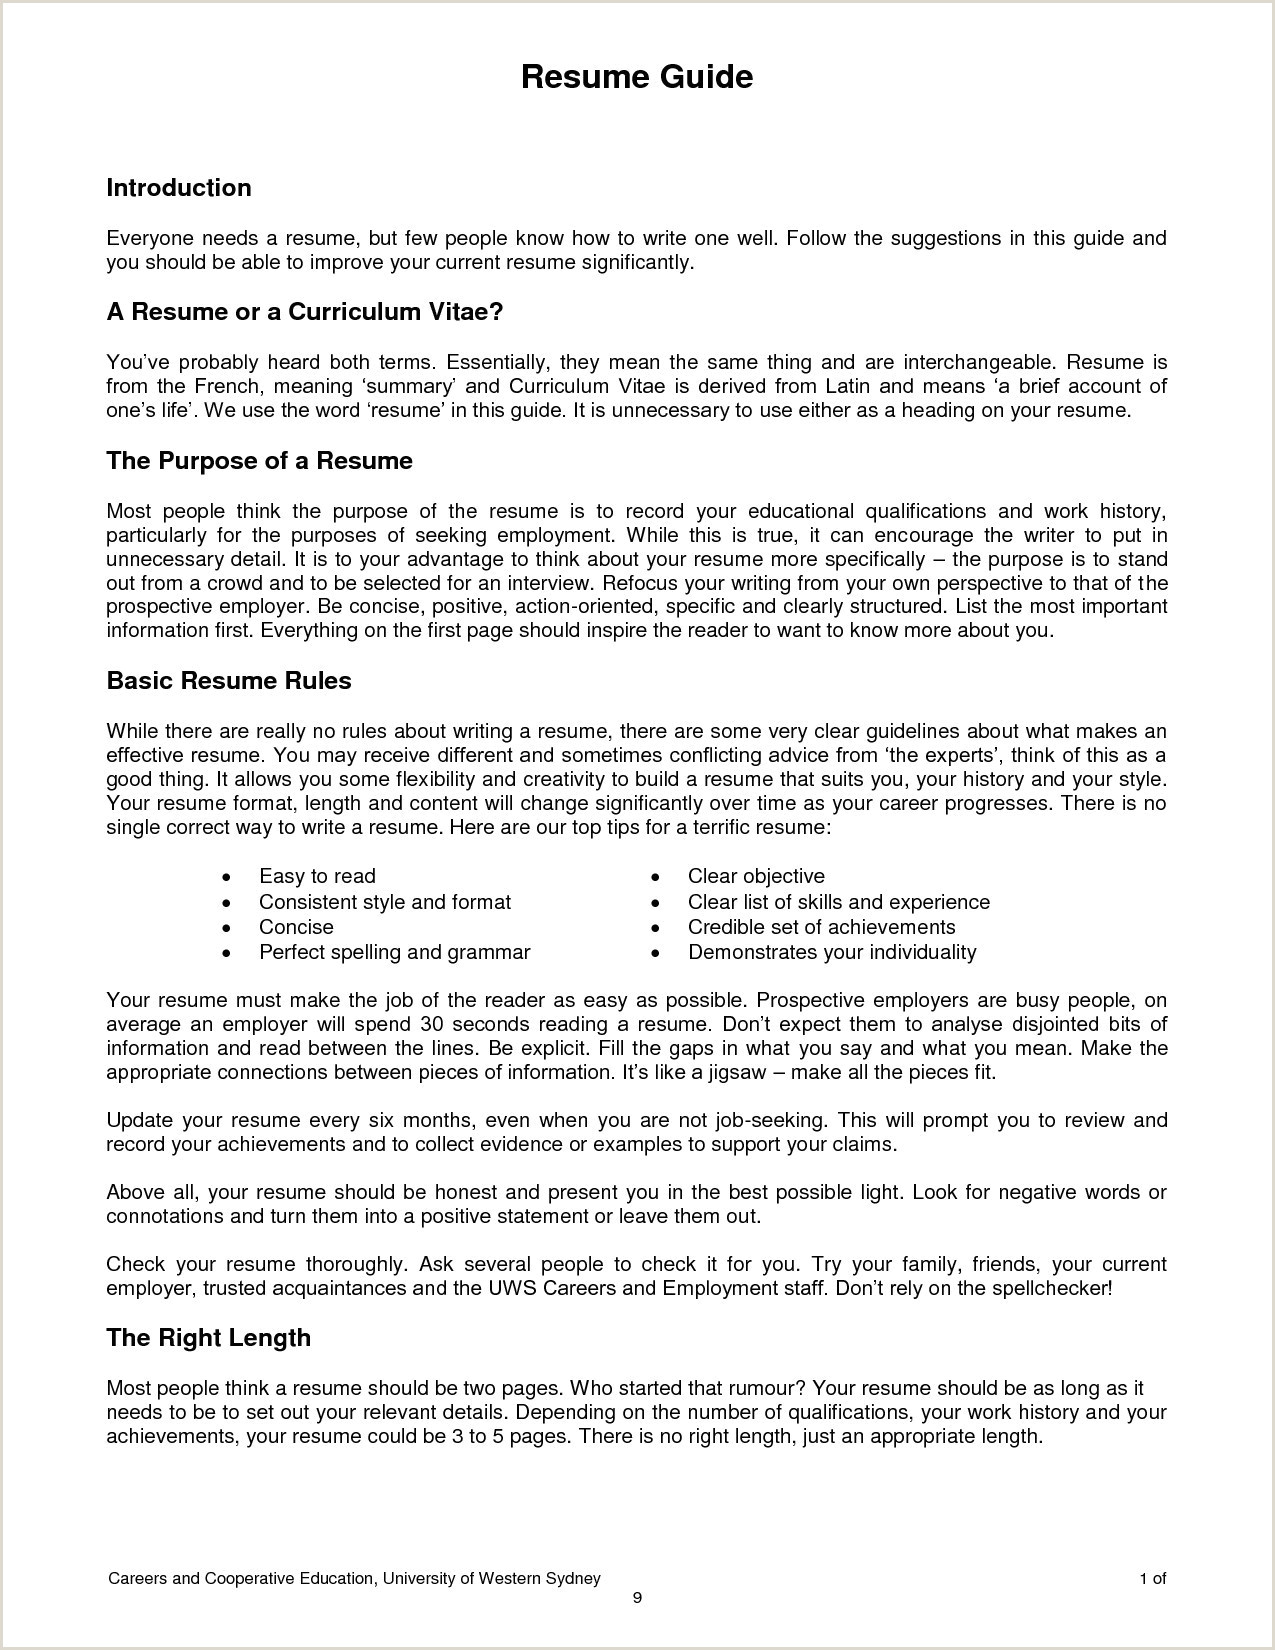 Resumes for Jobs Free Good Resumes Examples Profile Resume